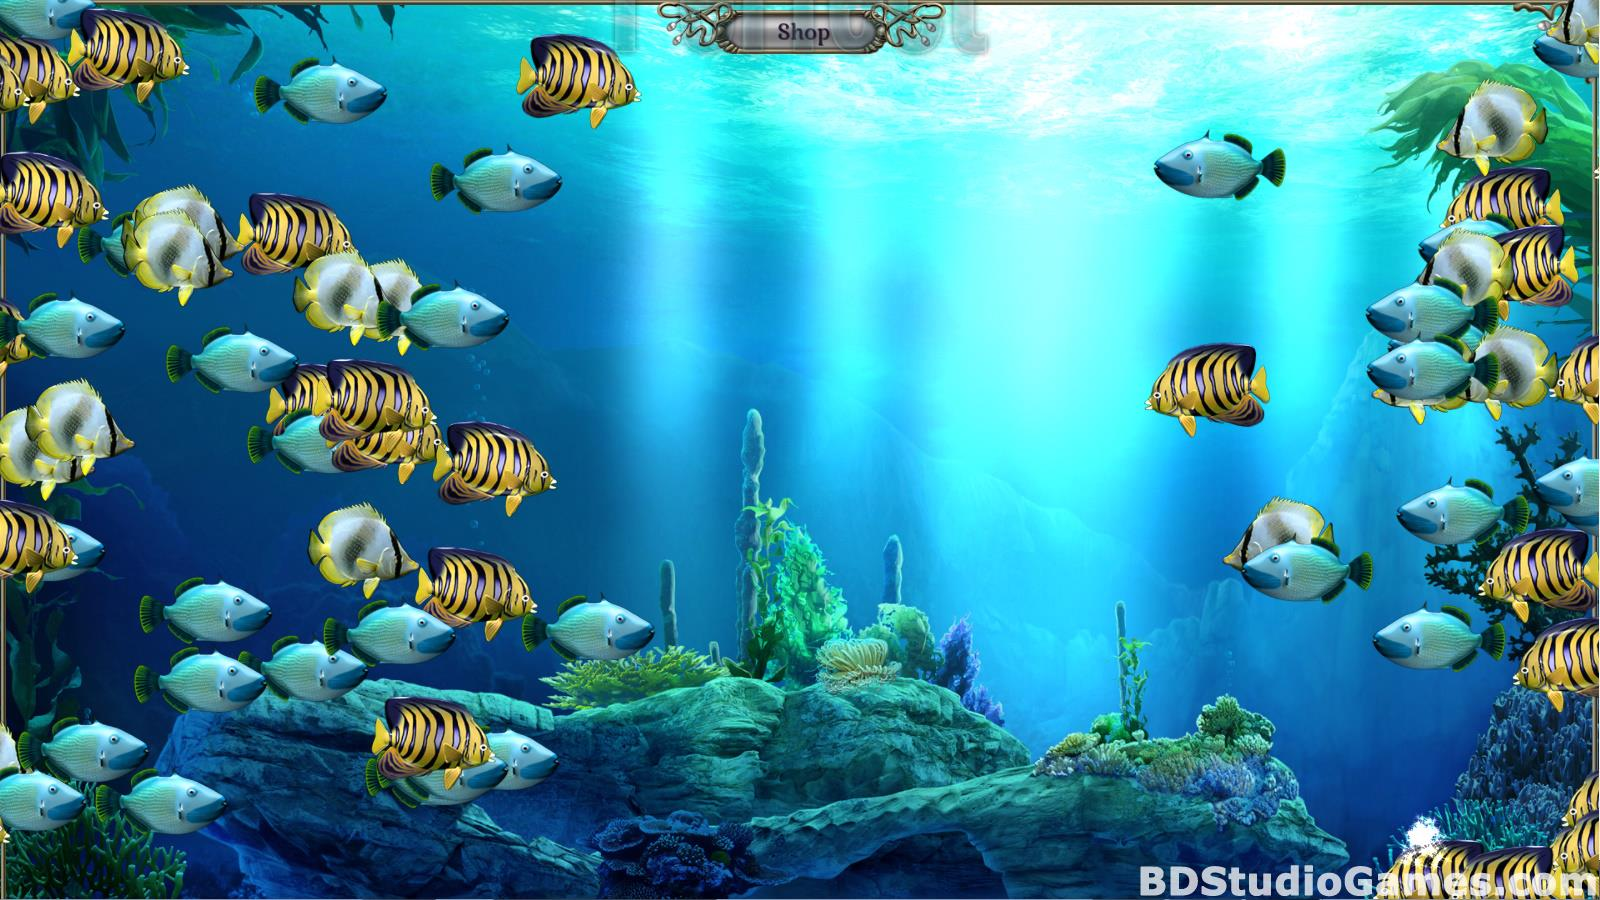 Jewel Match Atlantis Solitaire Free Download Screenshots 09